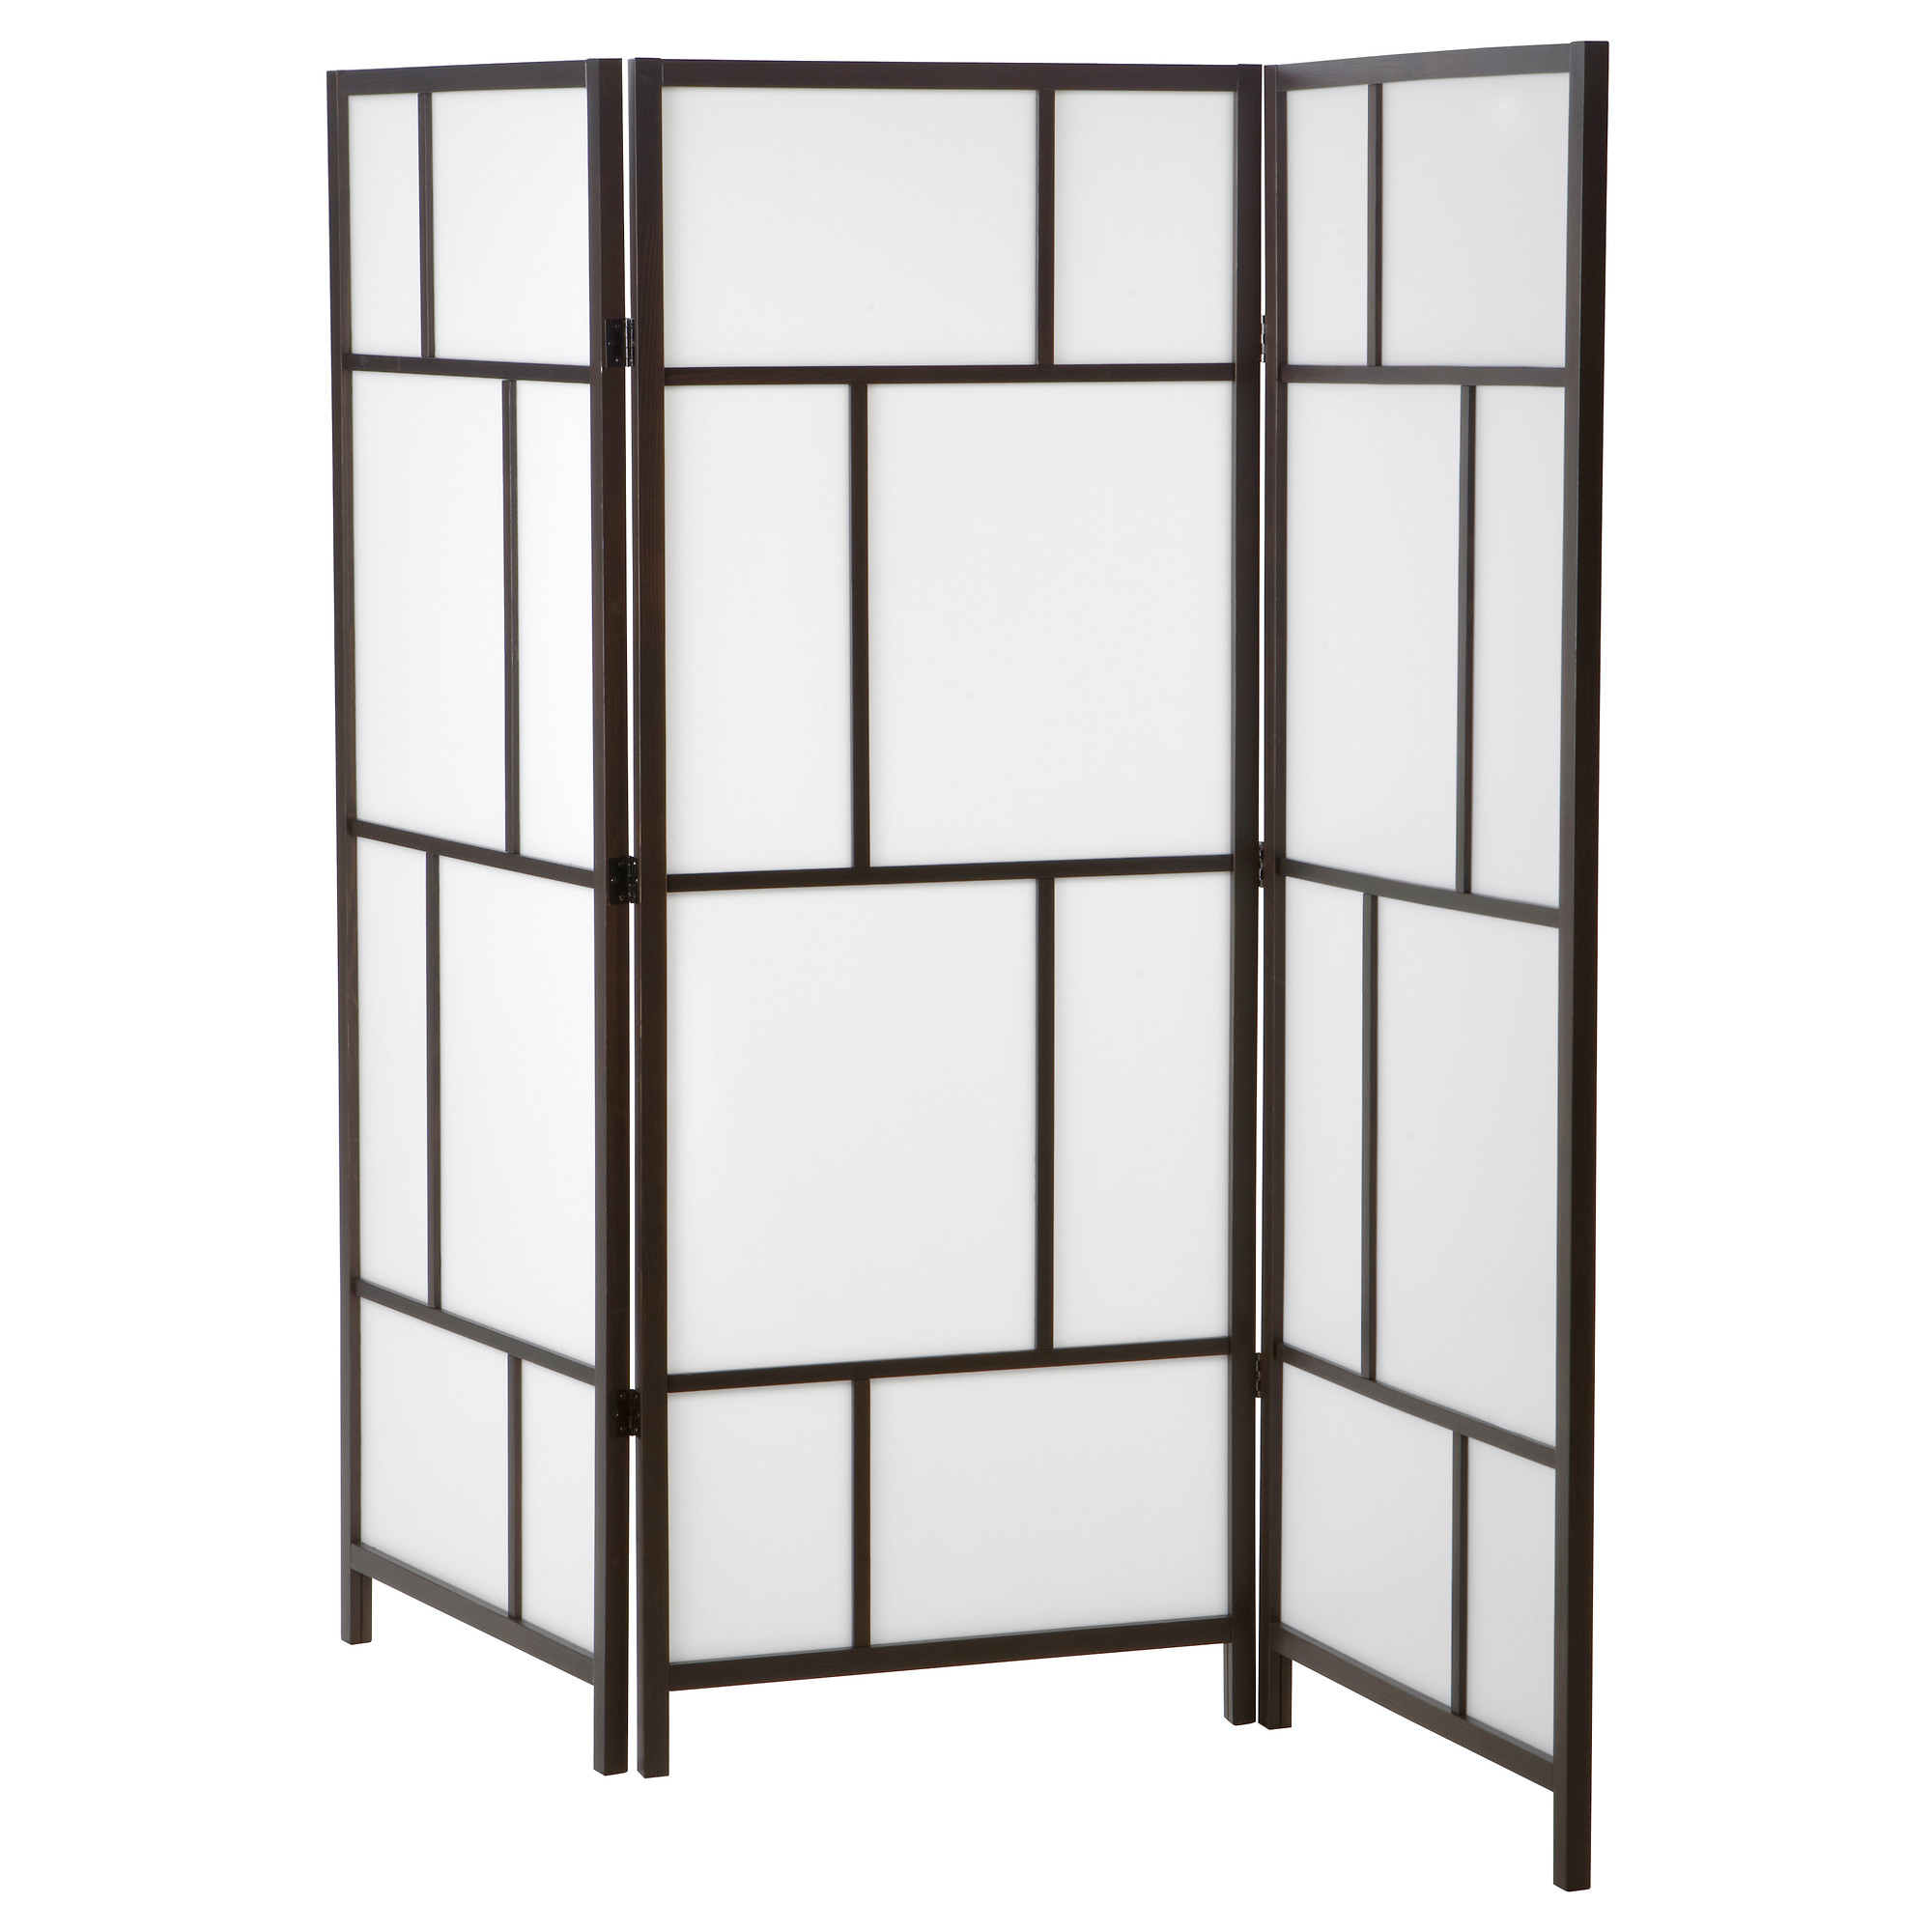 Great Room Separators Ikea for Any Room in Your Home: Room Separators Ikea | Home Depot Wall Dividers | Sliding Room Dividers